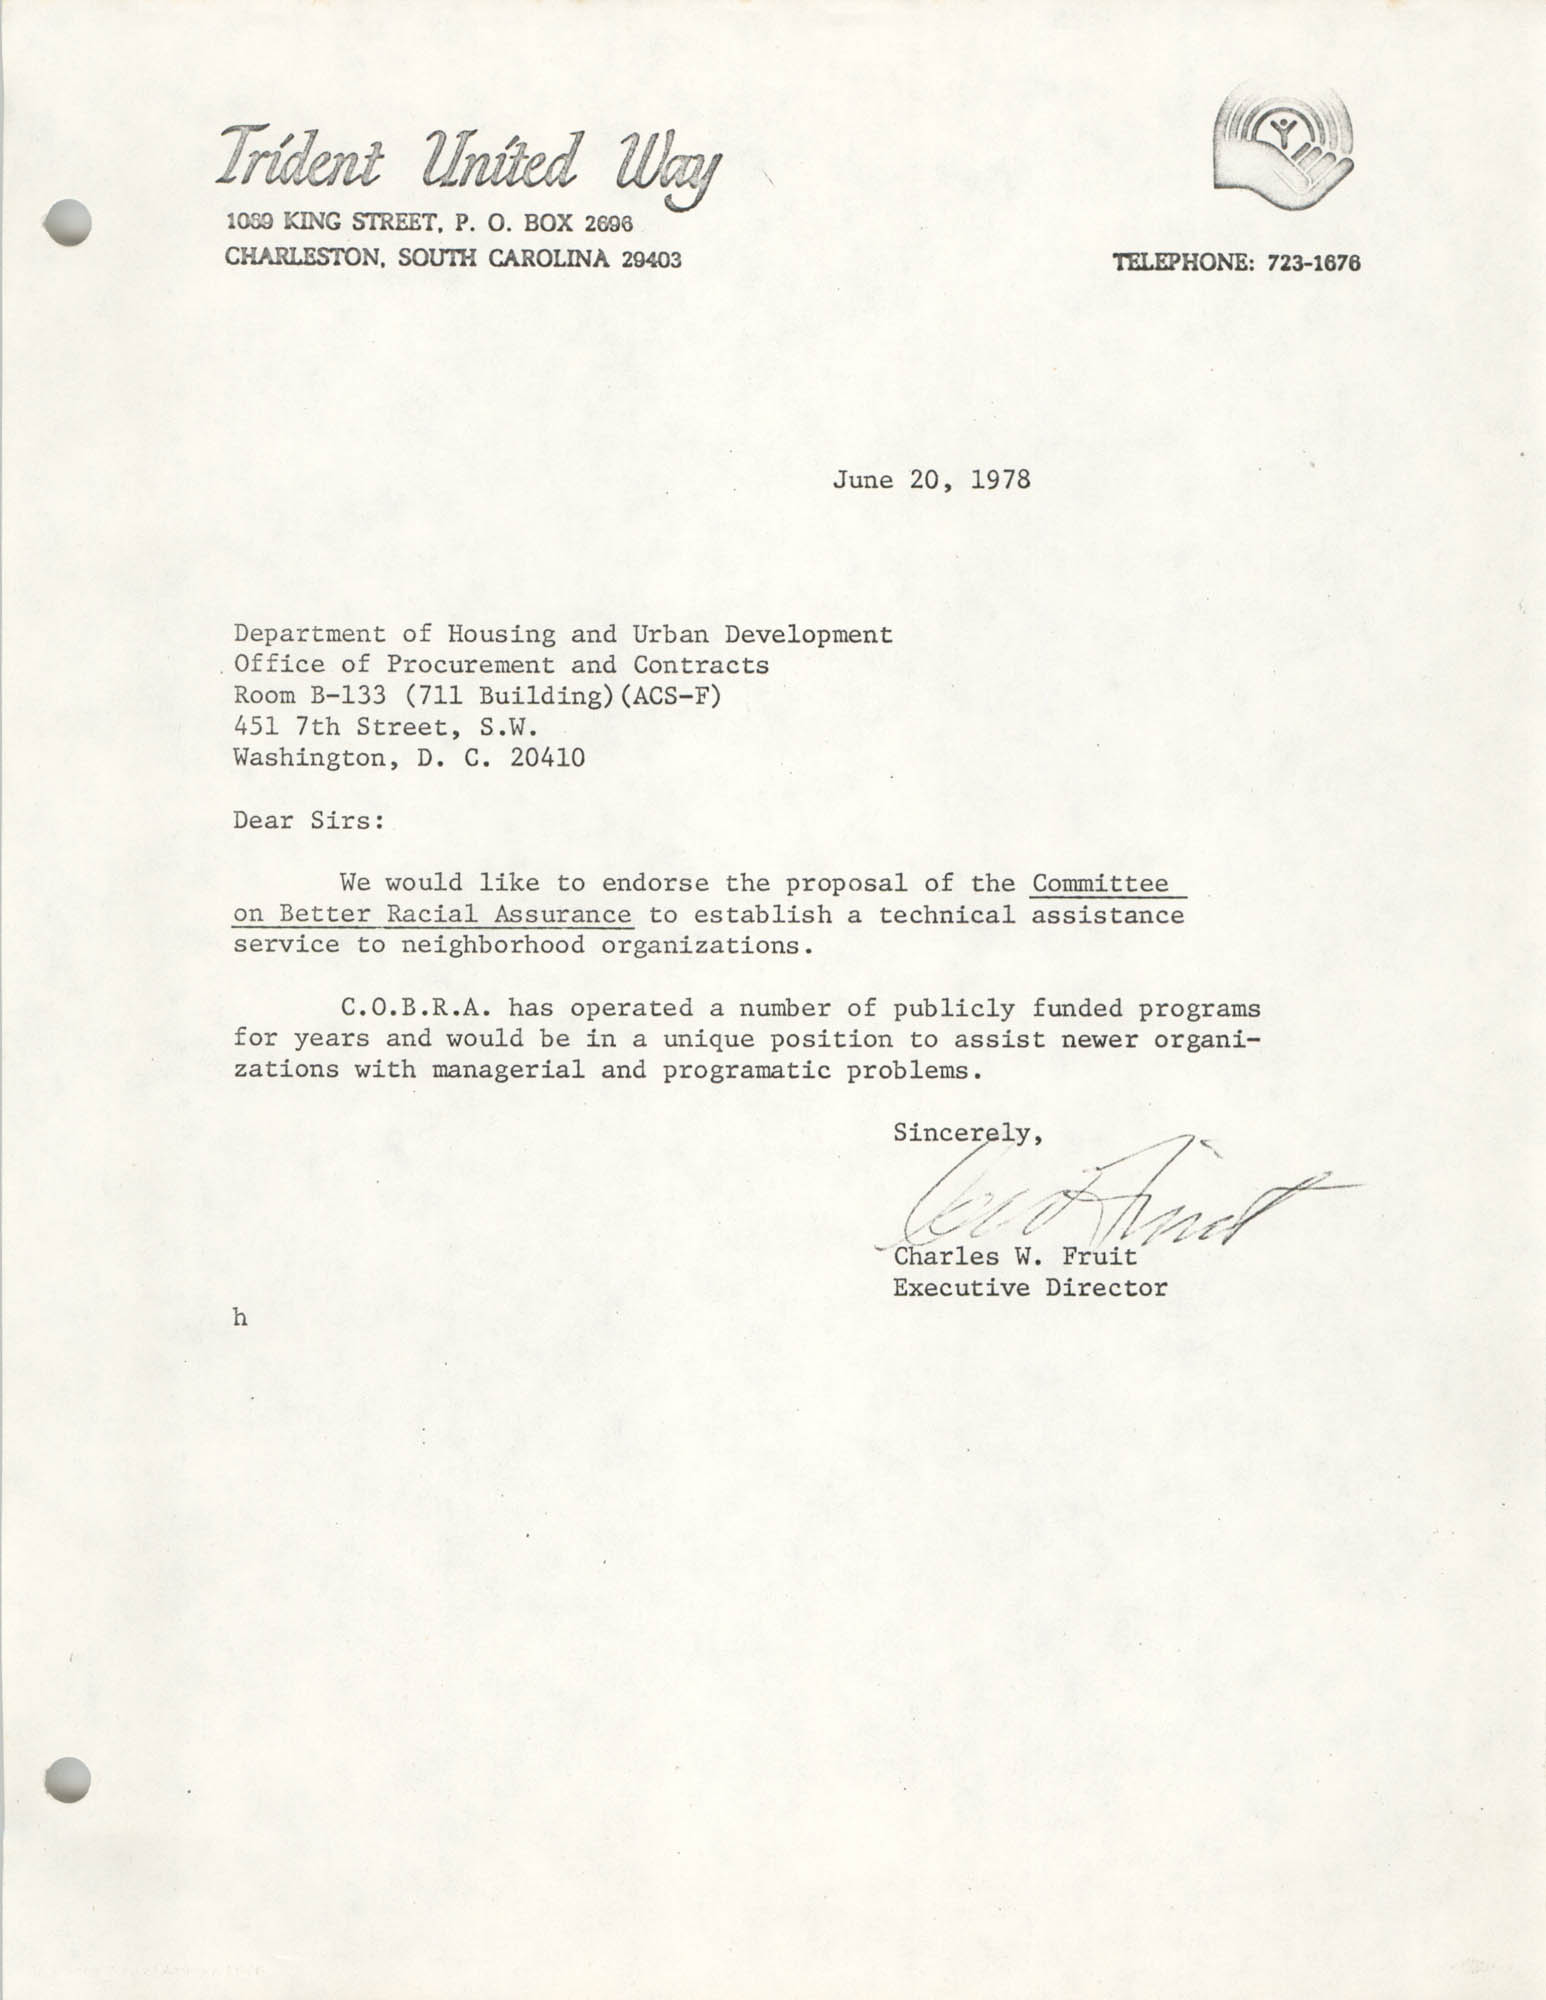 Letter from Charles W. Fruit to Department of Housing and Urban Development, June 20, 1978